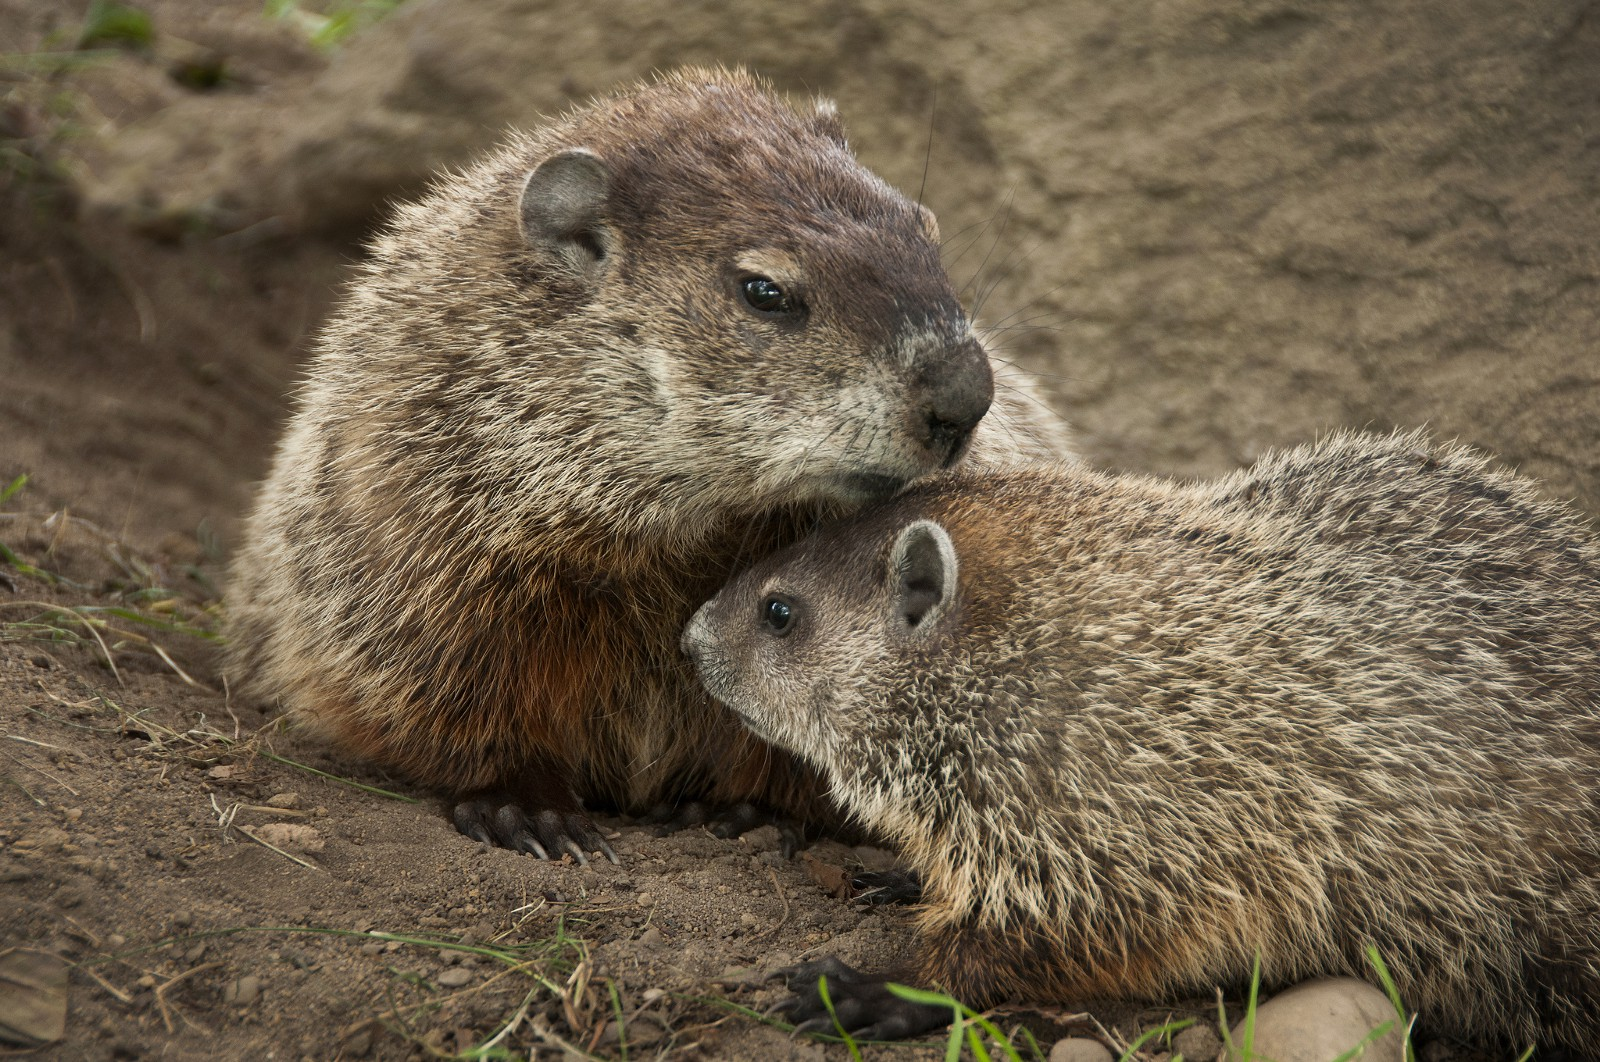 Groundhogs Fun Facts About Groundhogs Fish And Wildlife Service